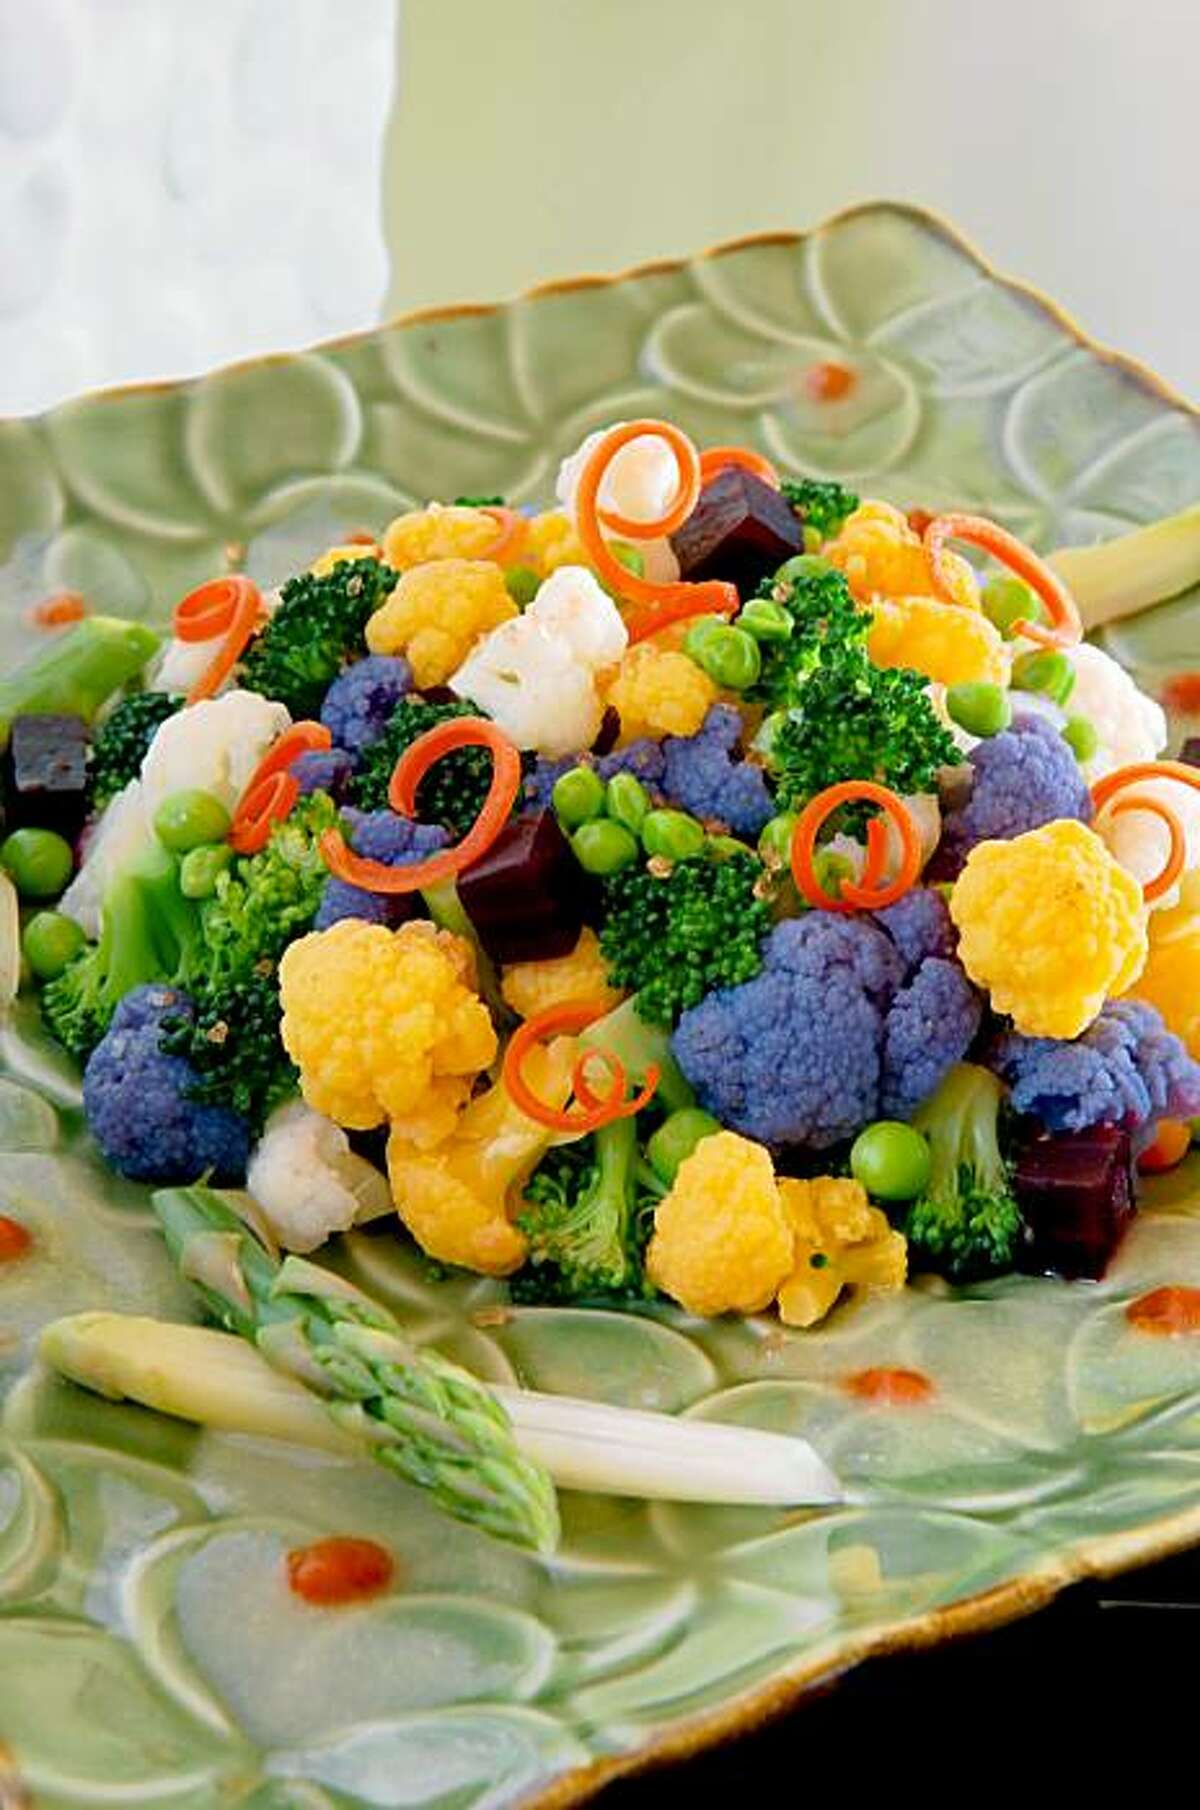 The Almost Raw and Naked Vegetable Salad showcases the seasonal sensibility of David Paul's Island Grill in Lahaina.